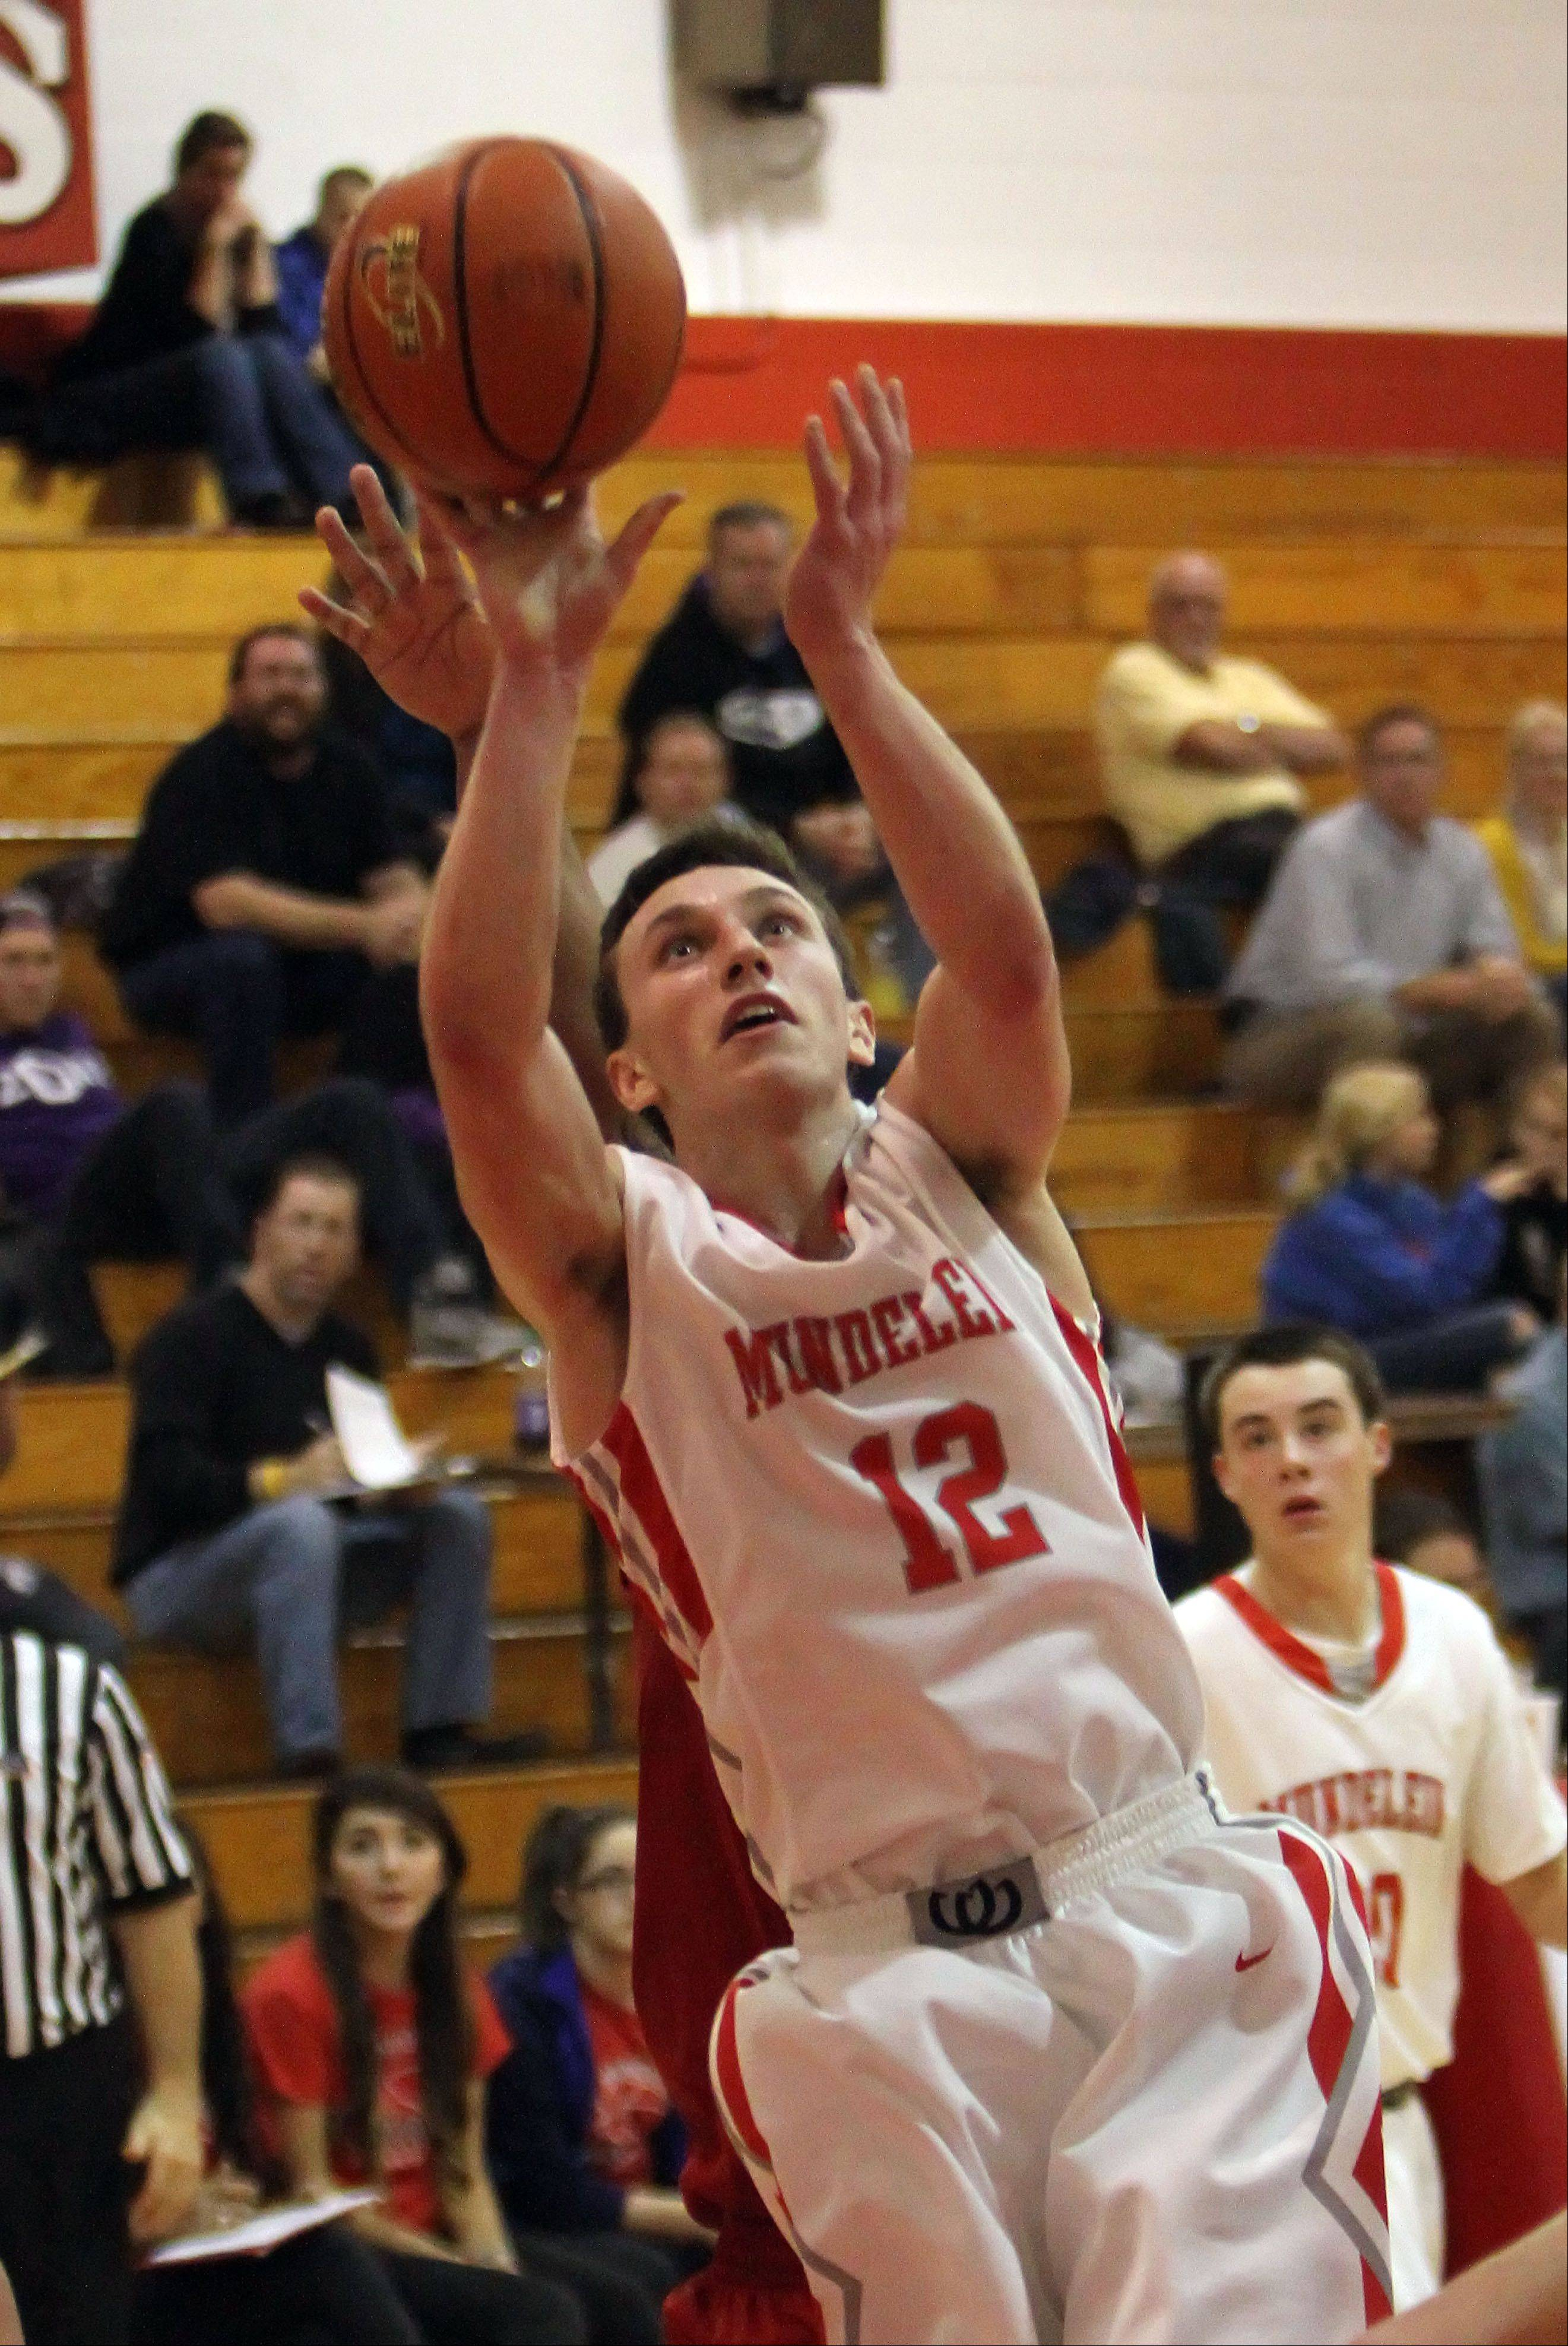 Mundelein�s Quinn Pokora drives to the hoop against Lakes last season at Mundelein.